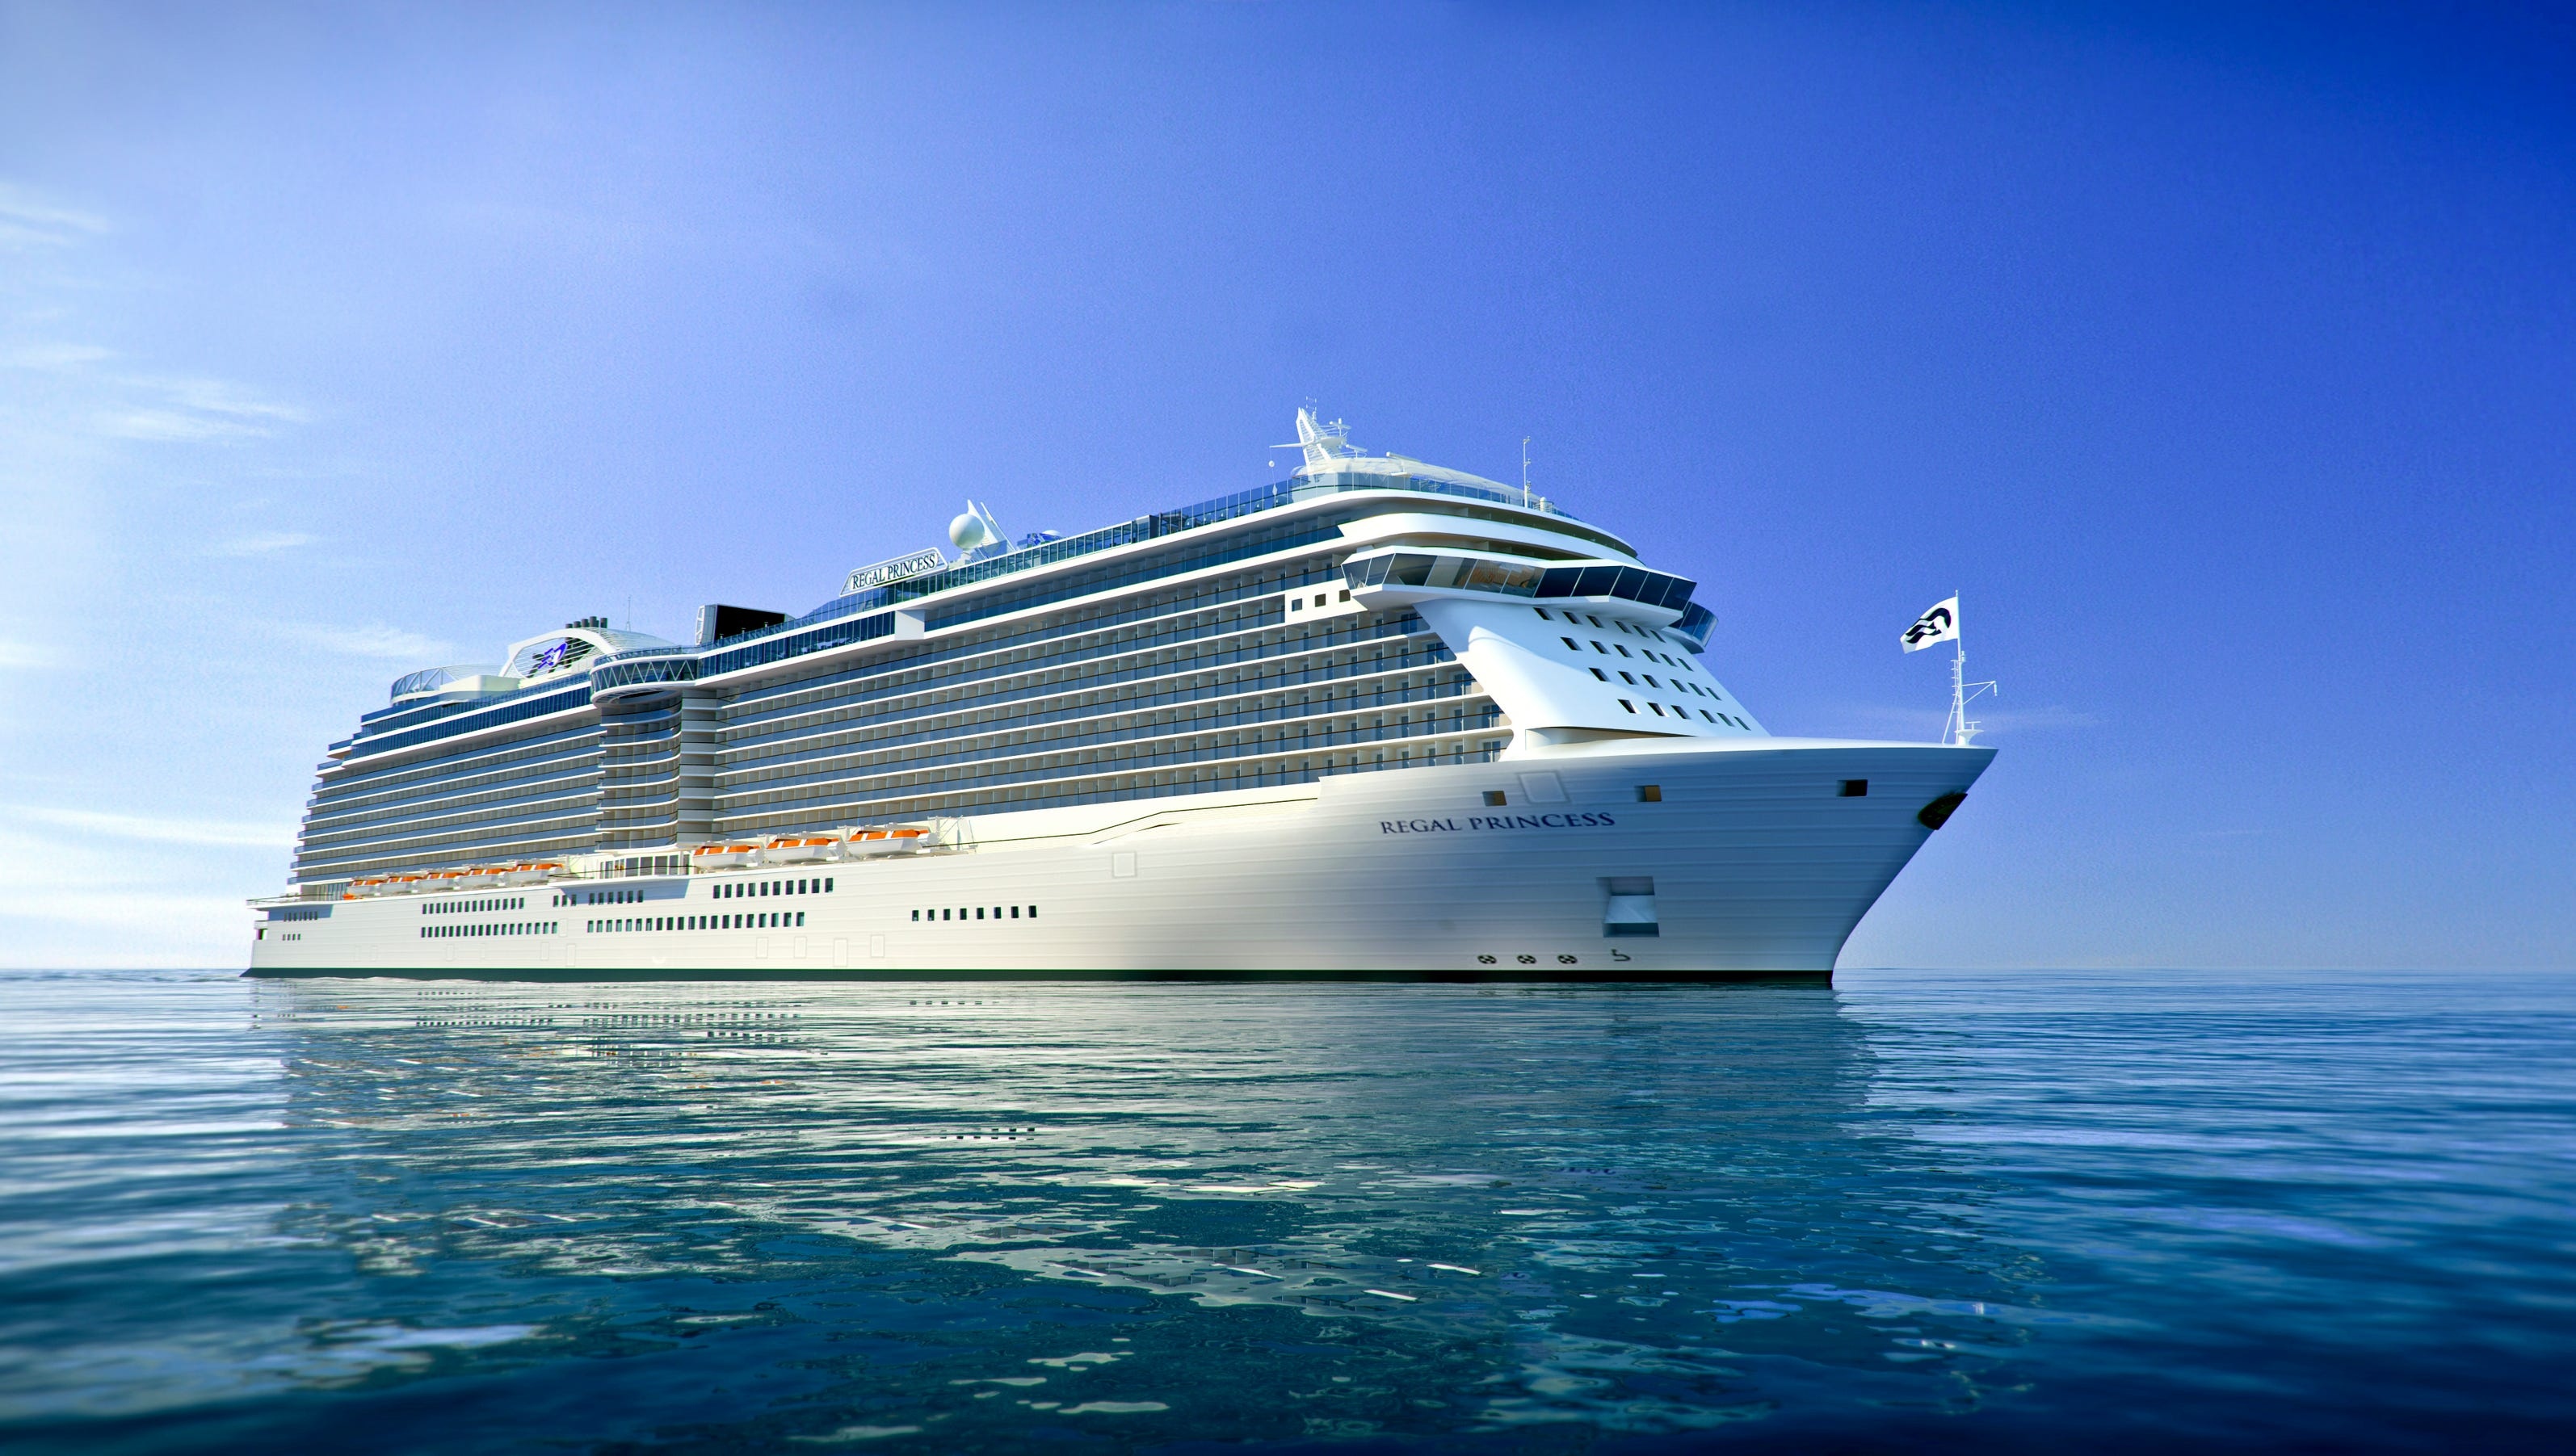 New cruise ships for 2014: Regal Princess